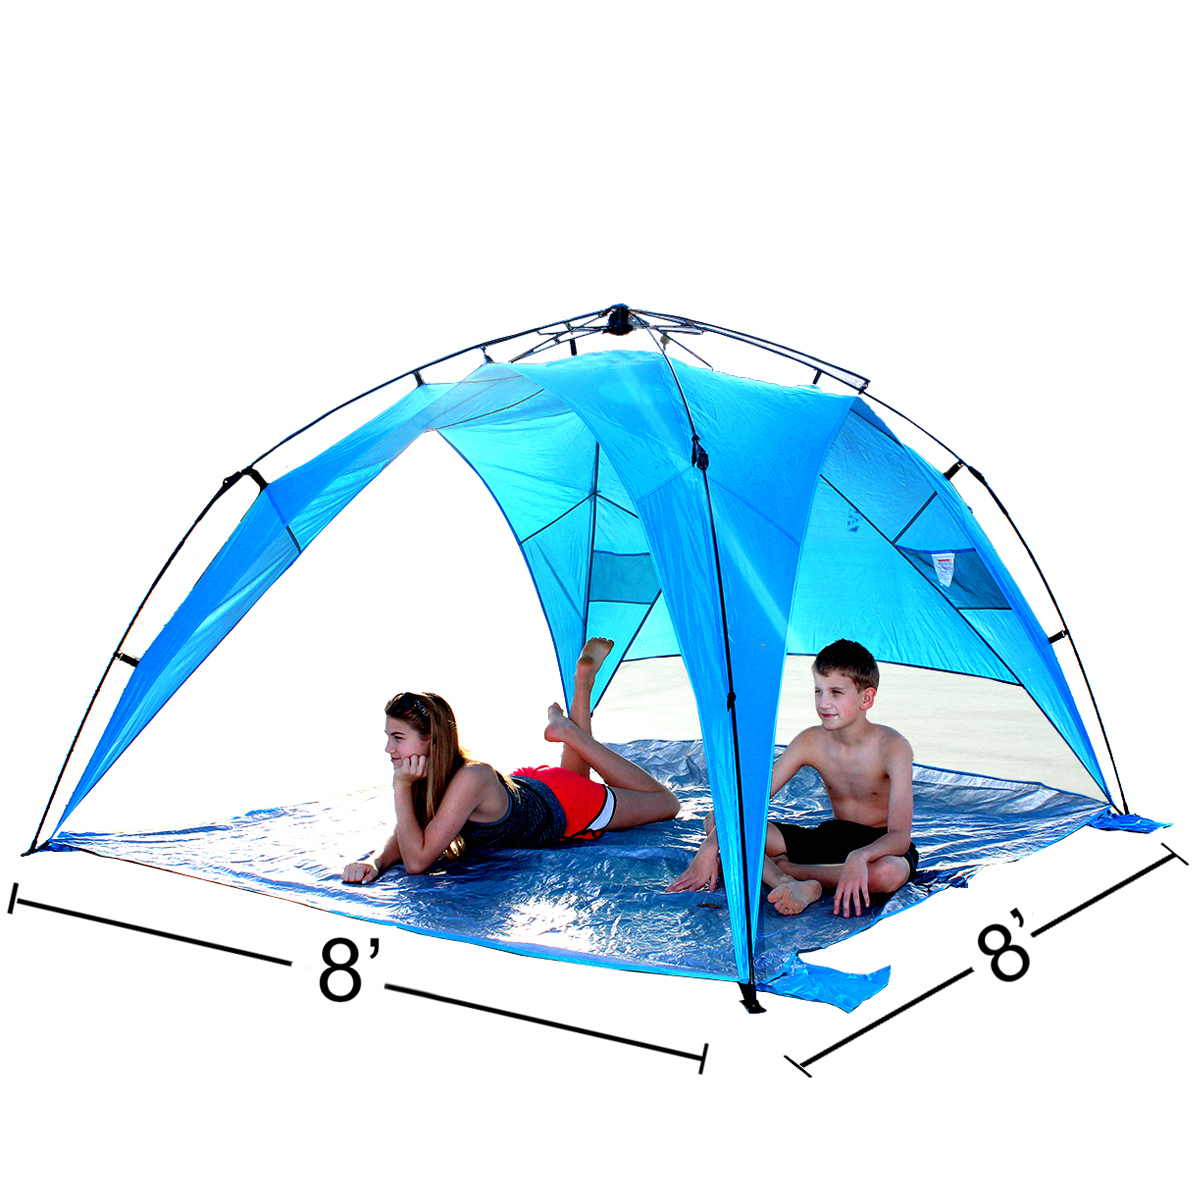 8 Foot EasyGo Shelter XL - Instant Beach Umbrella Tent Pop Up Easy Up Canopy Sun  sc 1 st  Walmart & 8 Foot EasyGo Shelter XL - Instant Beach Umbrella Tent Pop Up Easy ...